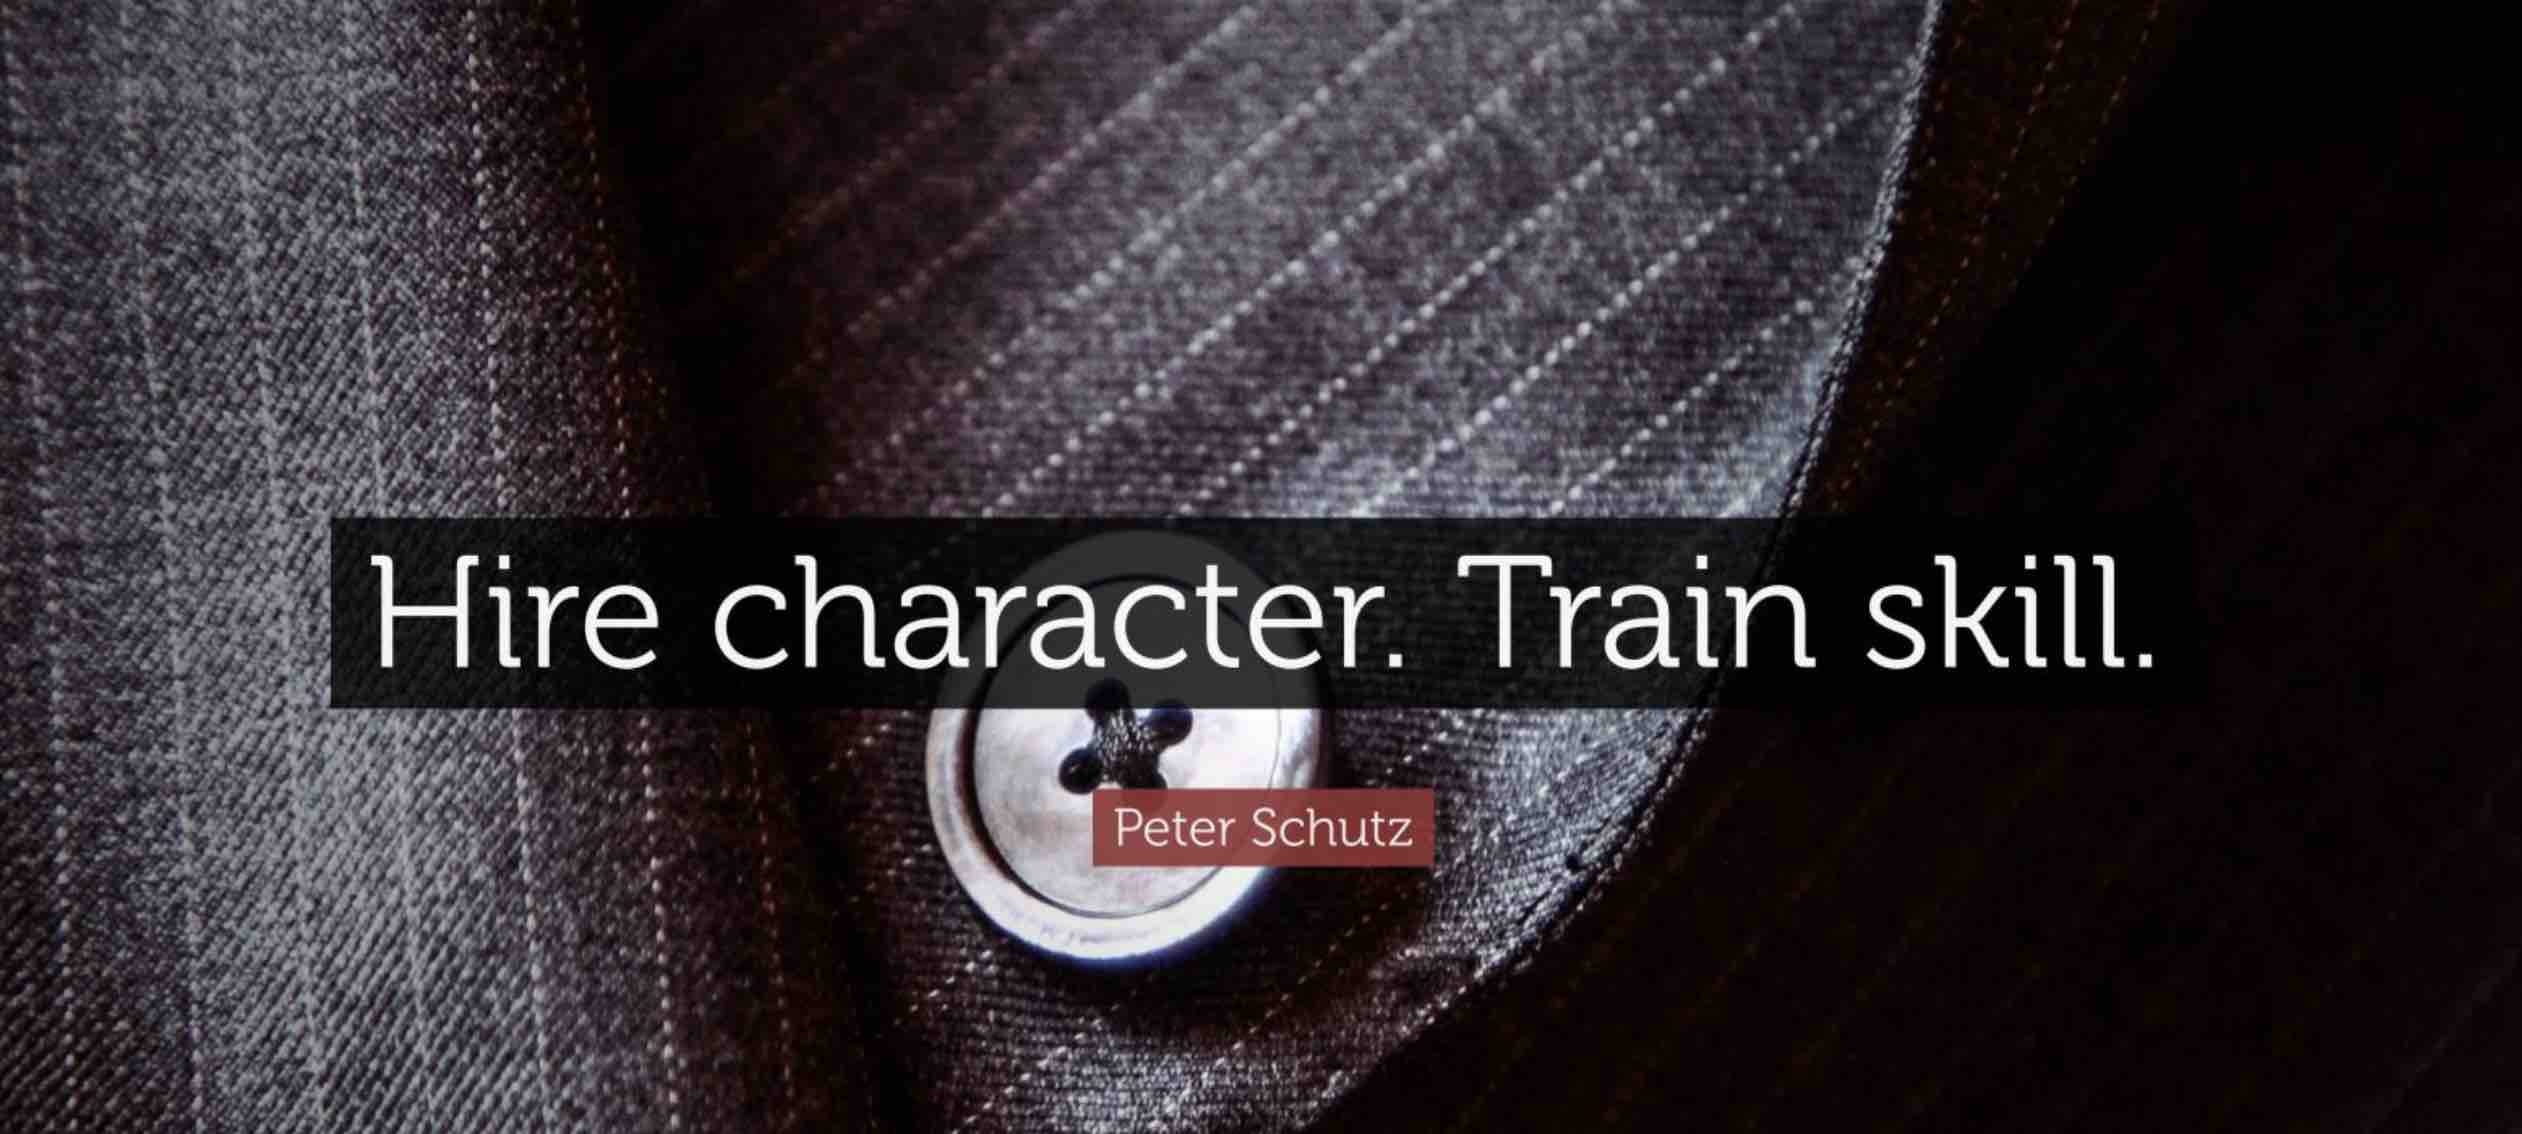 Hire Character, Train Skill - The Altus Education Philosophy